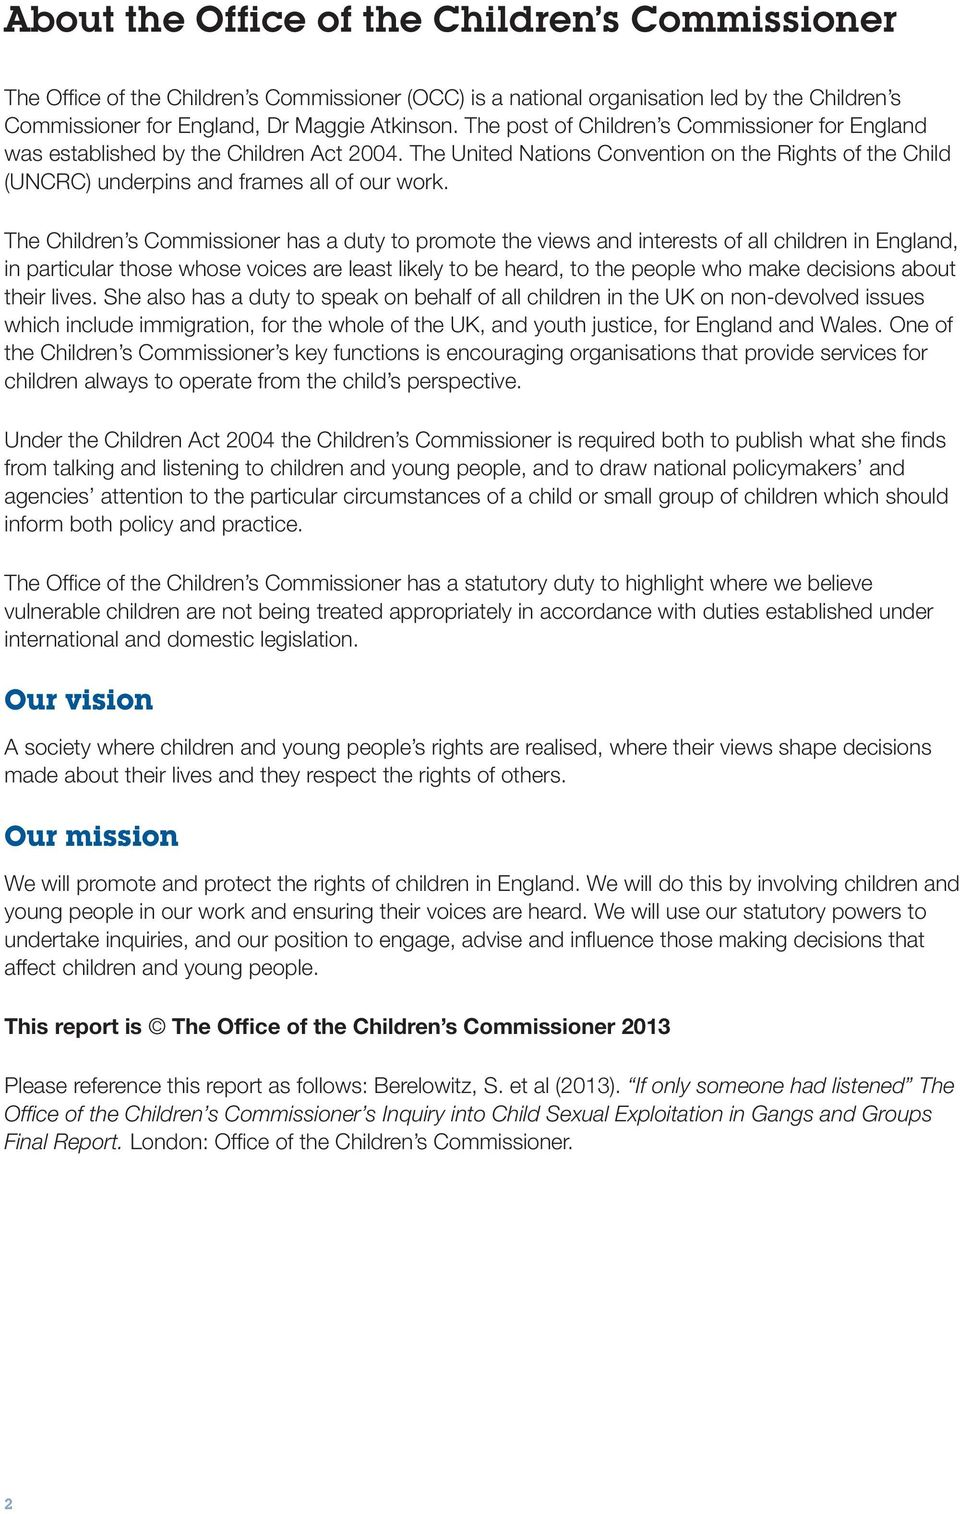 The Children s Commissioner has a duty to promote the views and interests of all children in England, in particular those whose voices are least likely to be heard, to the people who make decisions